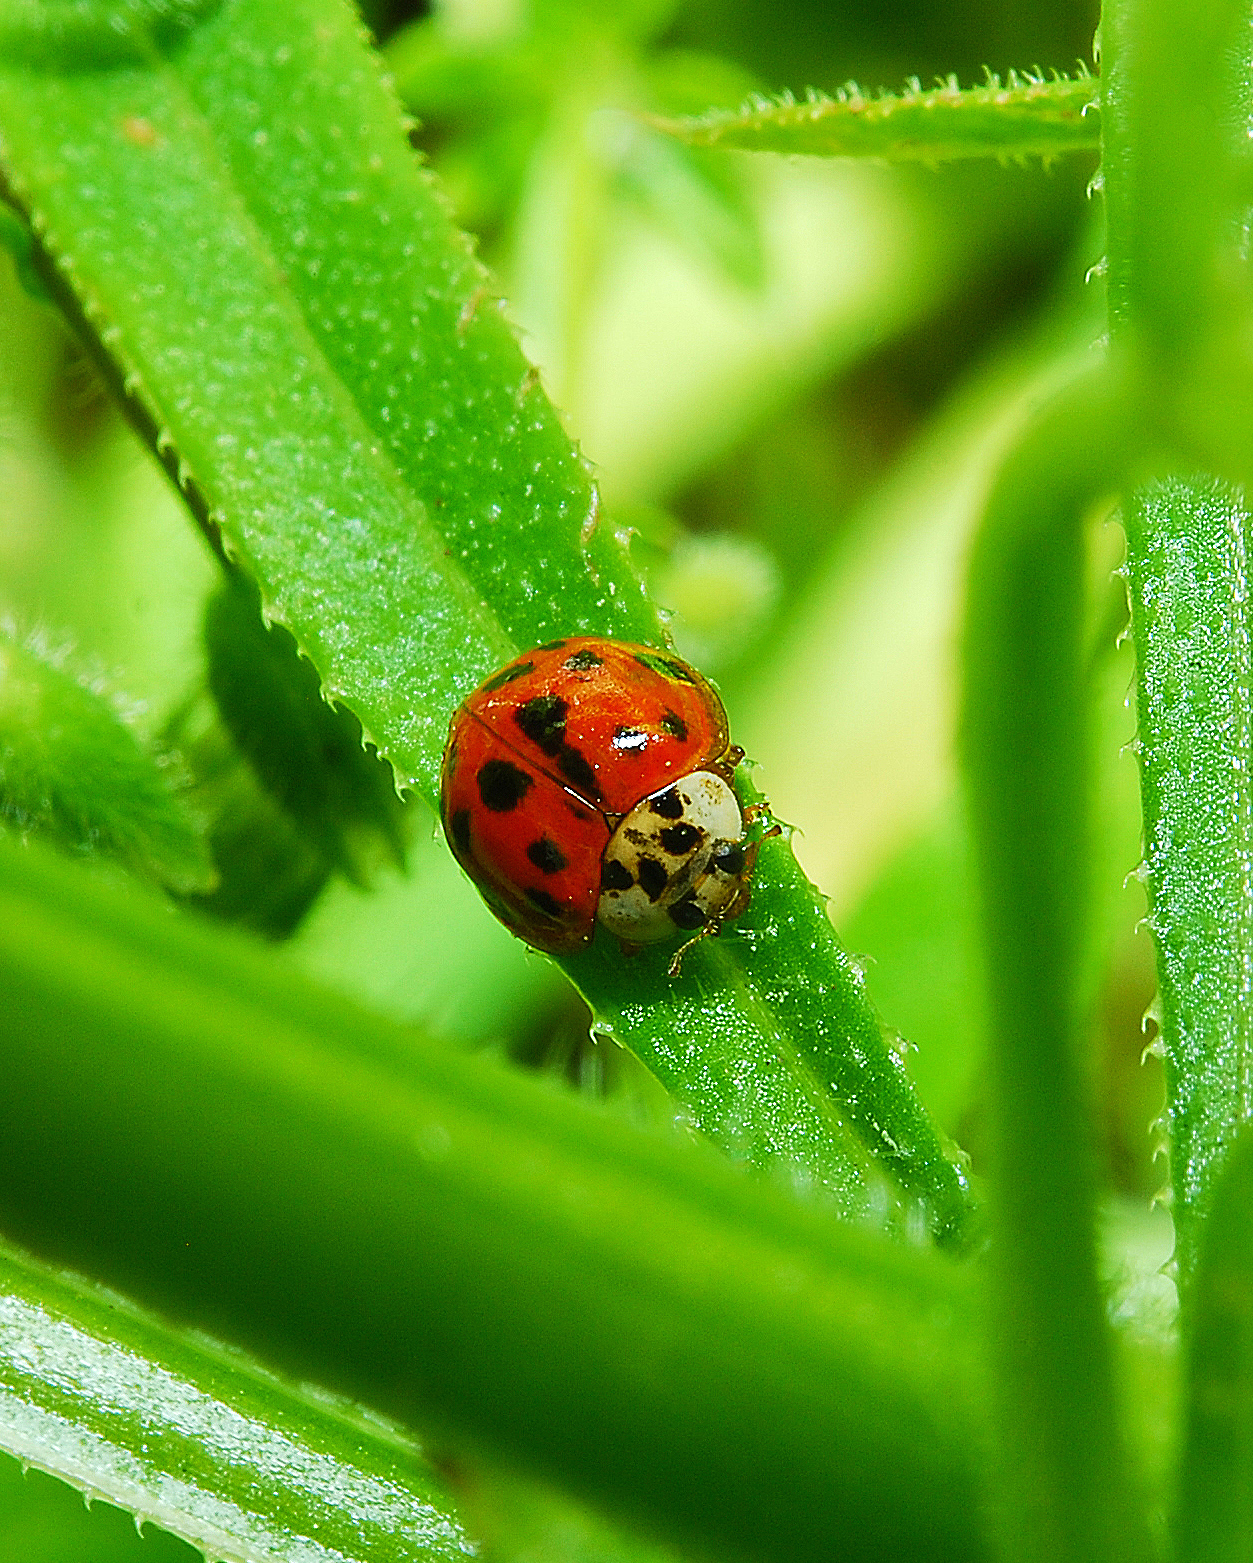 Asian ladybeetle showing up in Louisiana